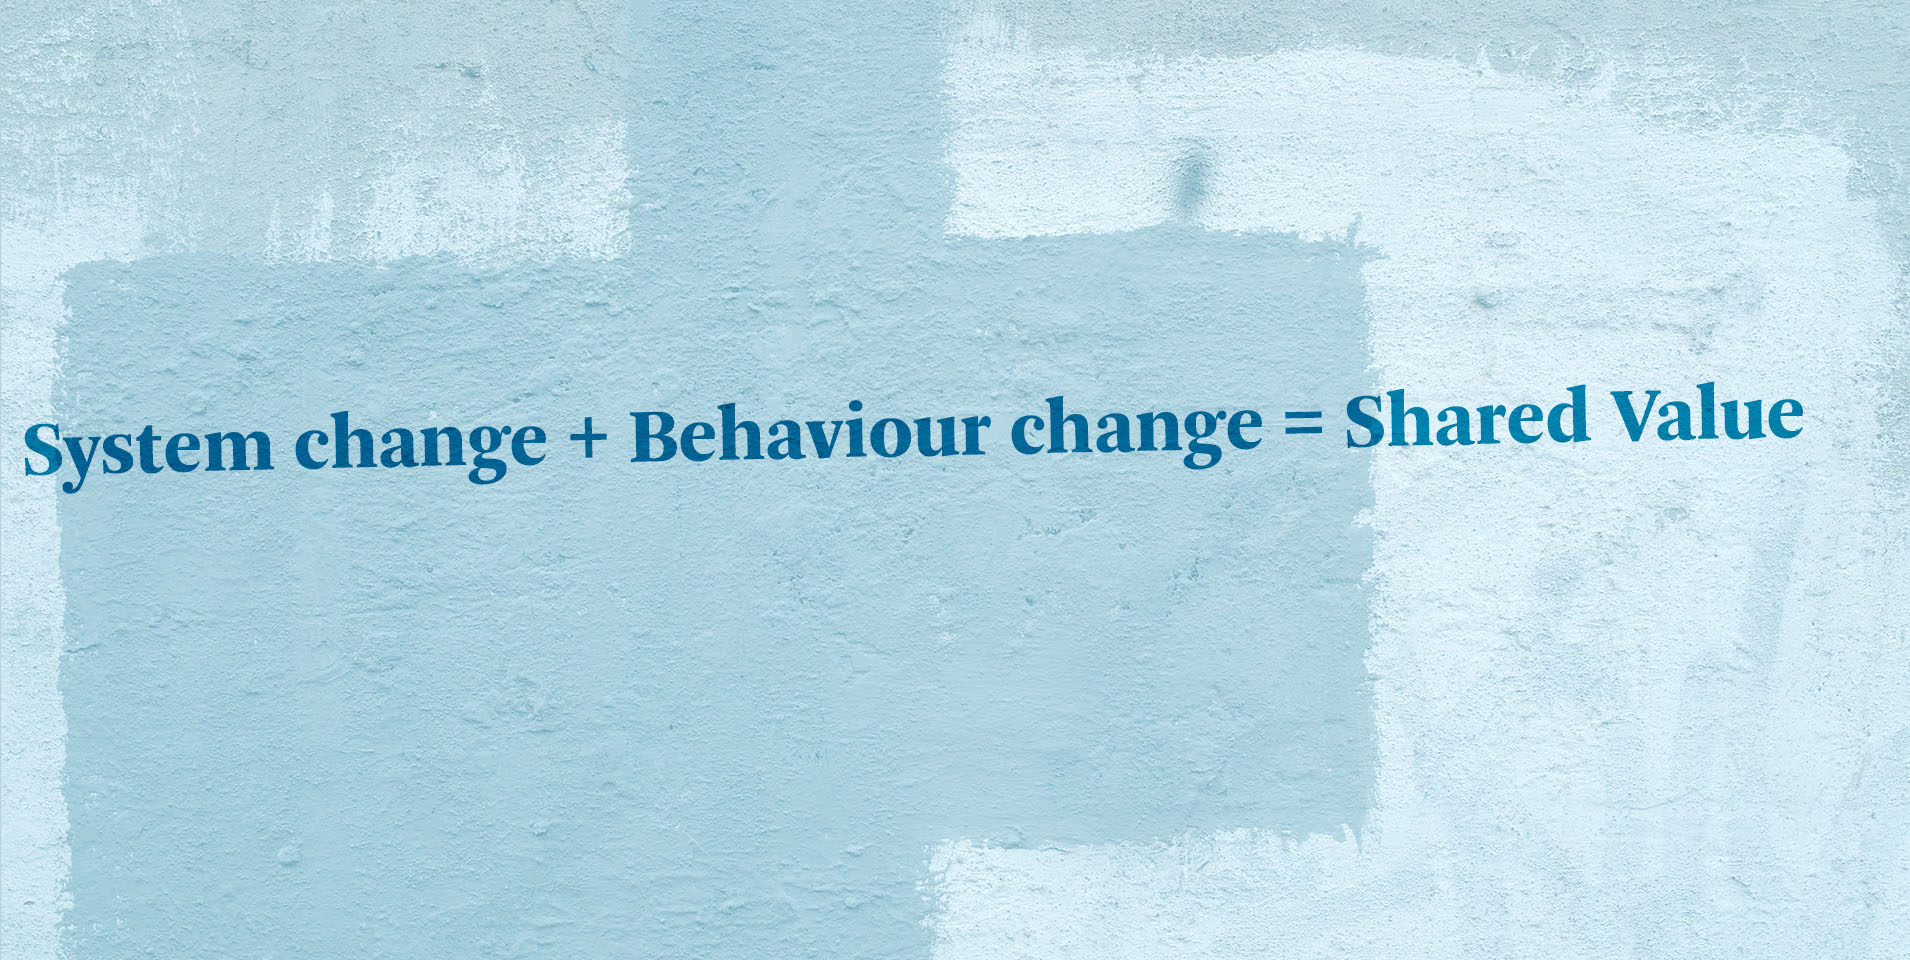 Behaviour and system change to create shared value.